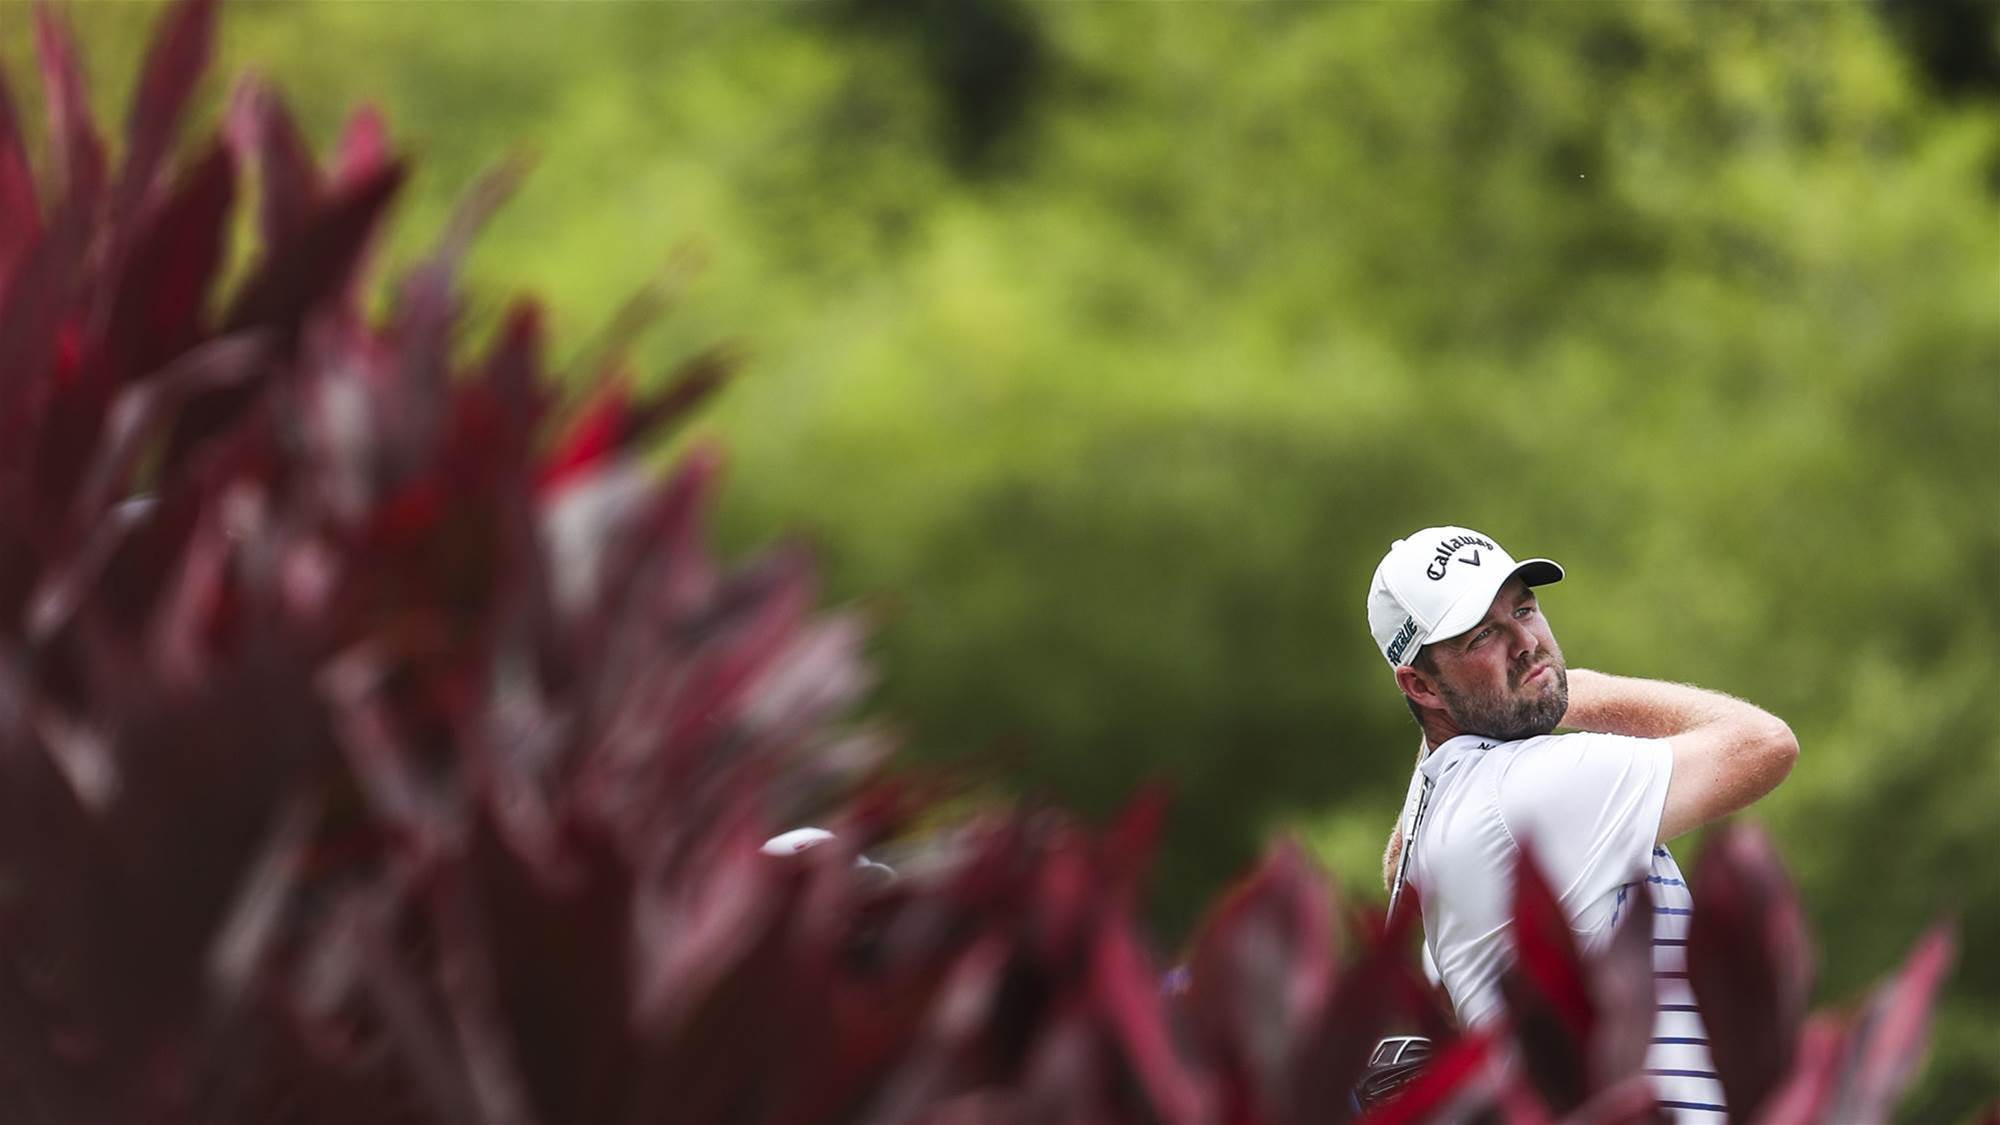 'I don't care about fame or fortune': Marc Leishman